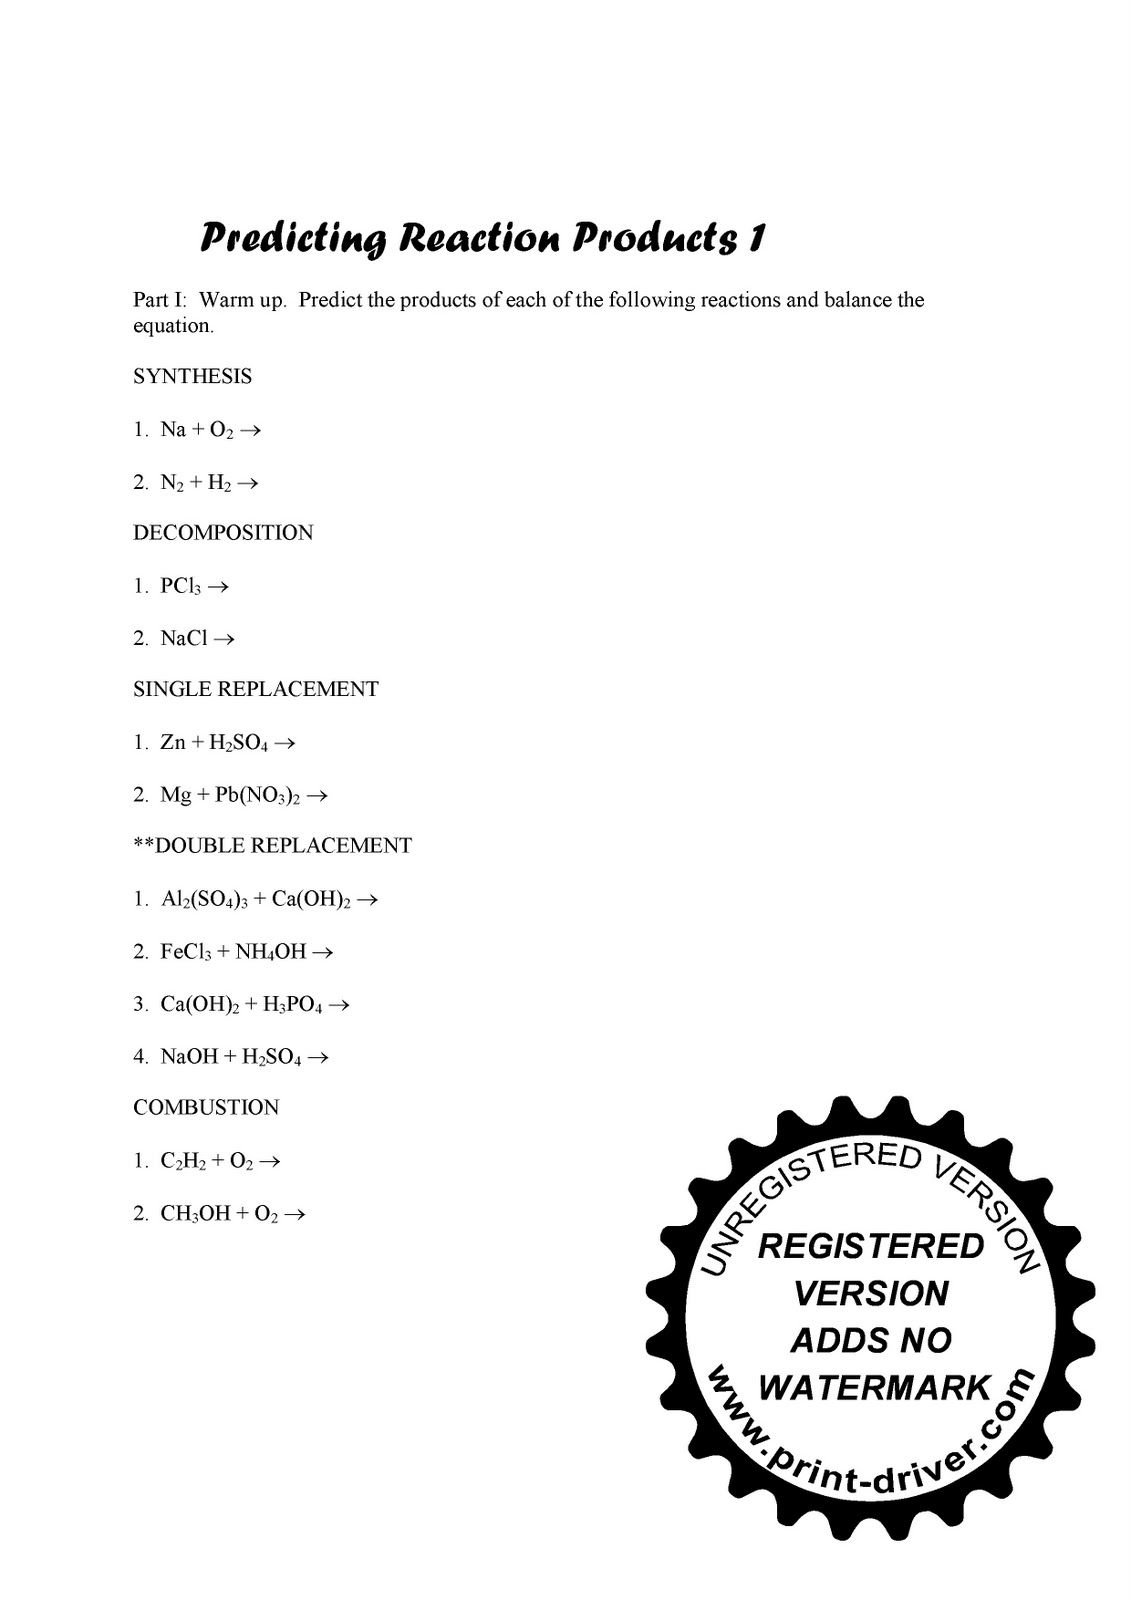 Reaction Products Worksheet Answers Sharebrowse – Predicting Products Worksheet Answers